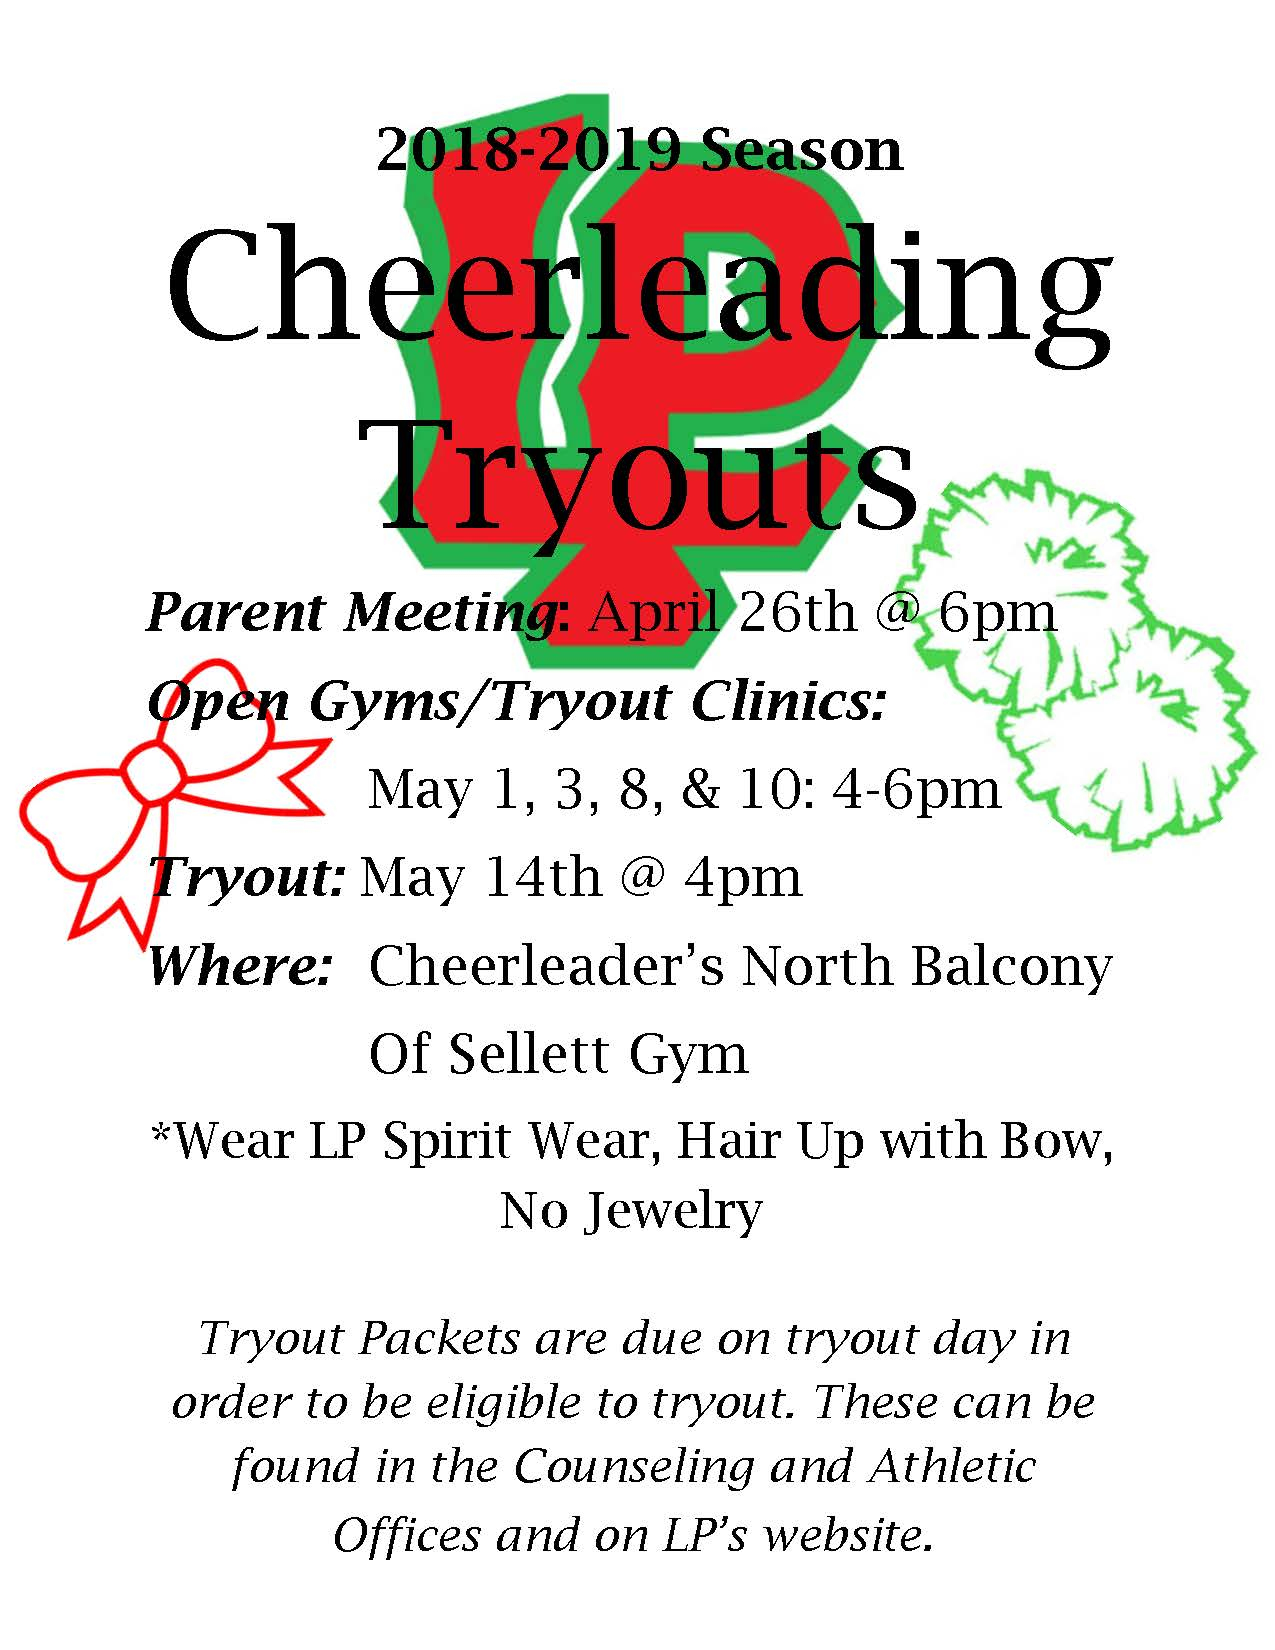 Become an LP Cheerleader